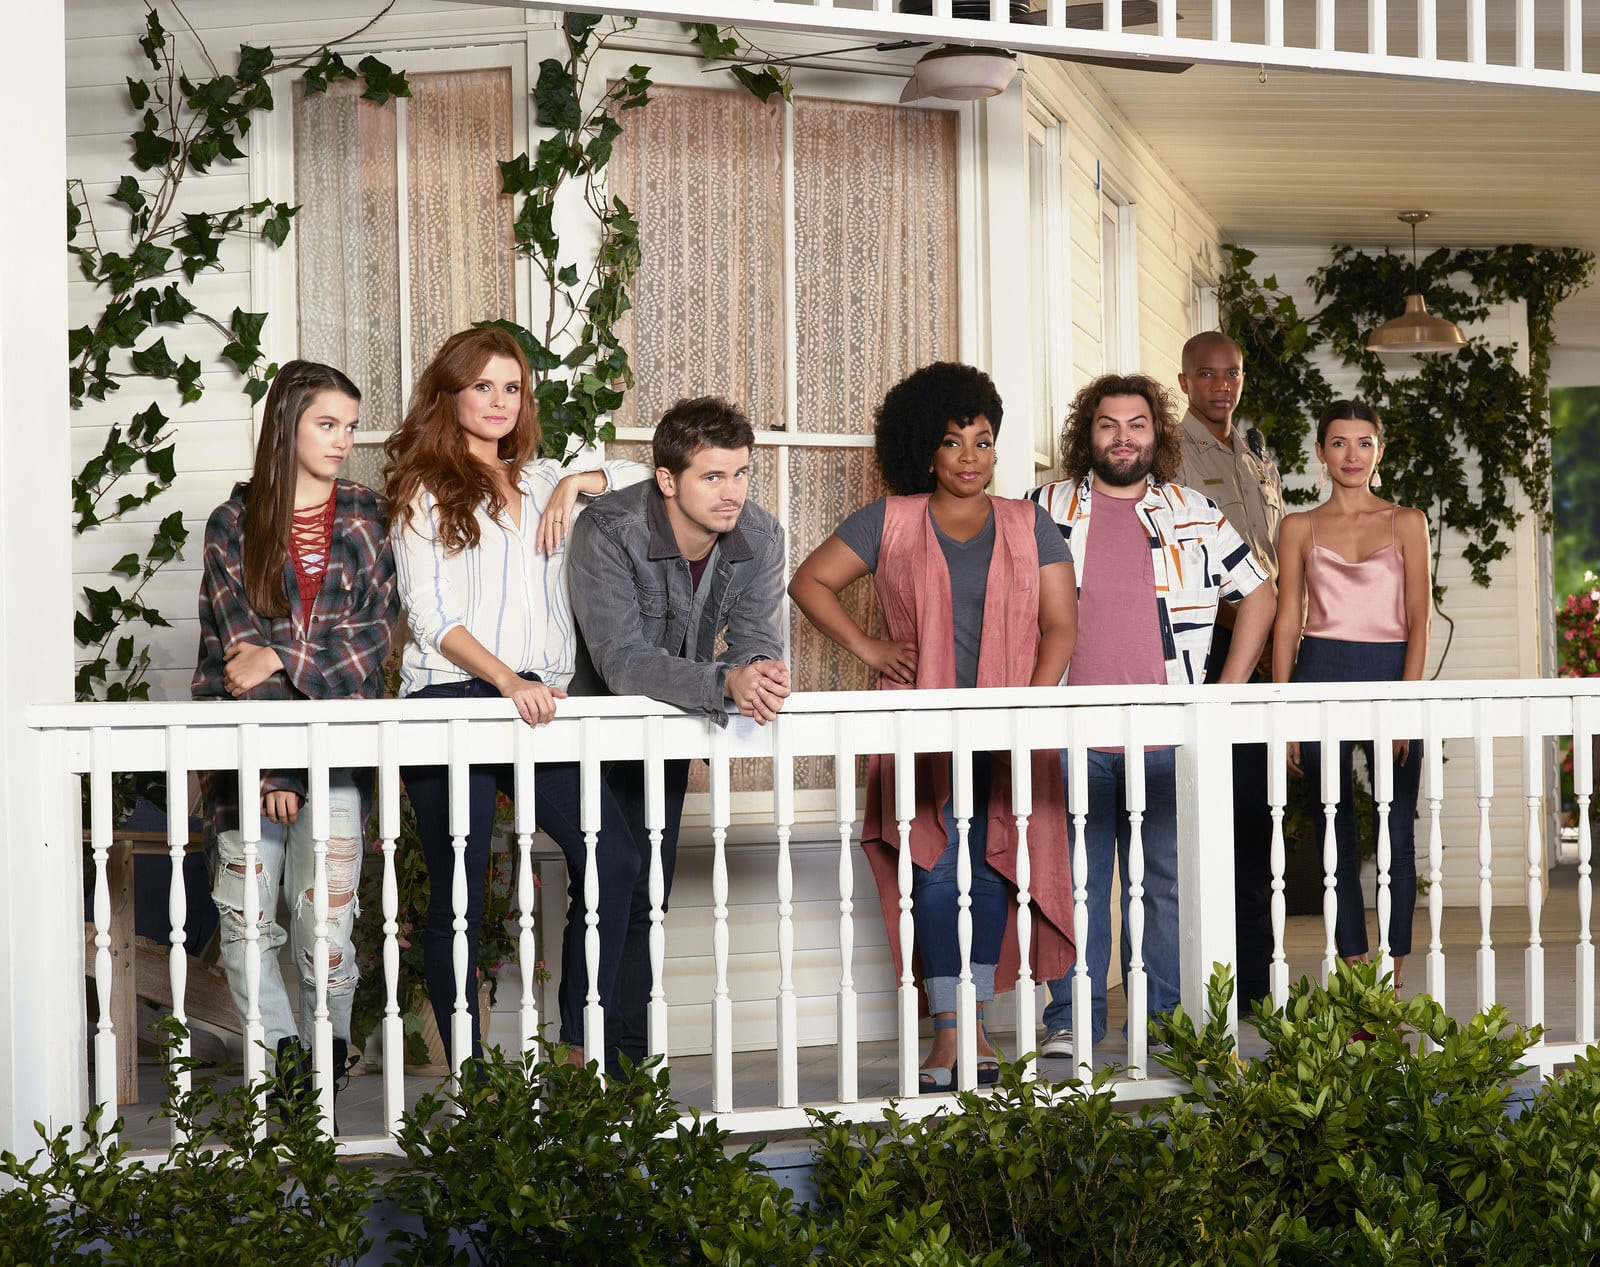 How fans can help save ABC's 'Kevin (Probably) Saves the World'